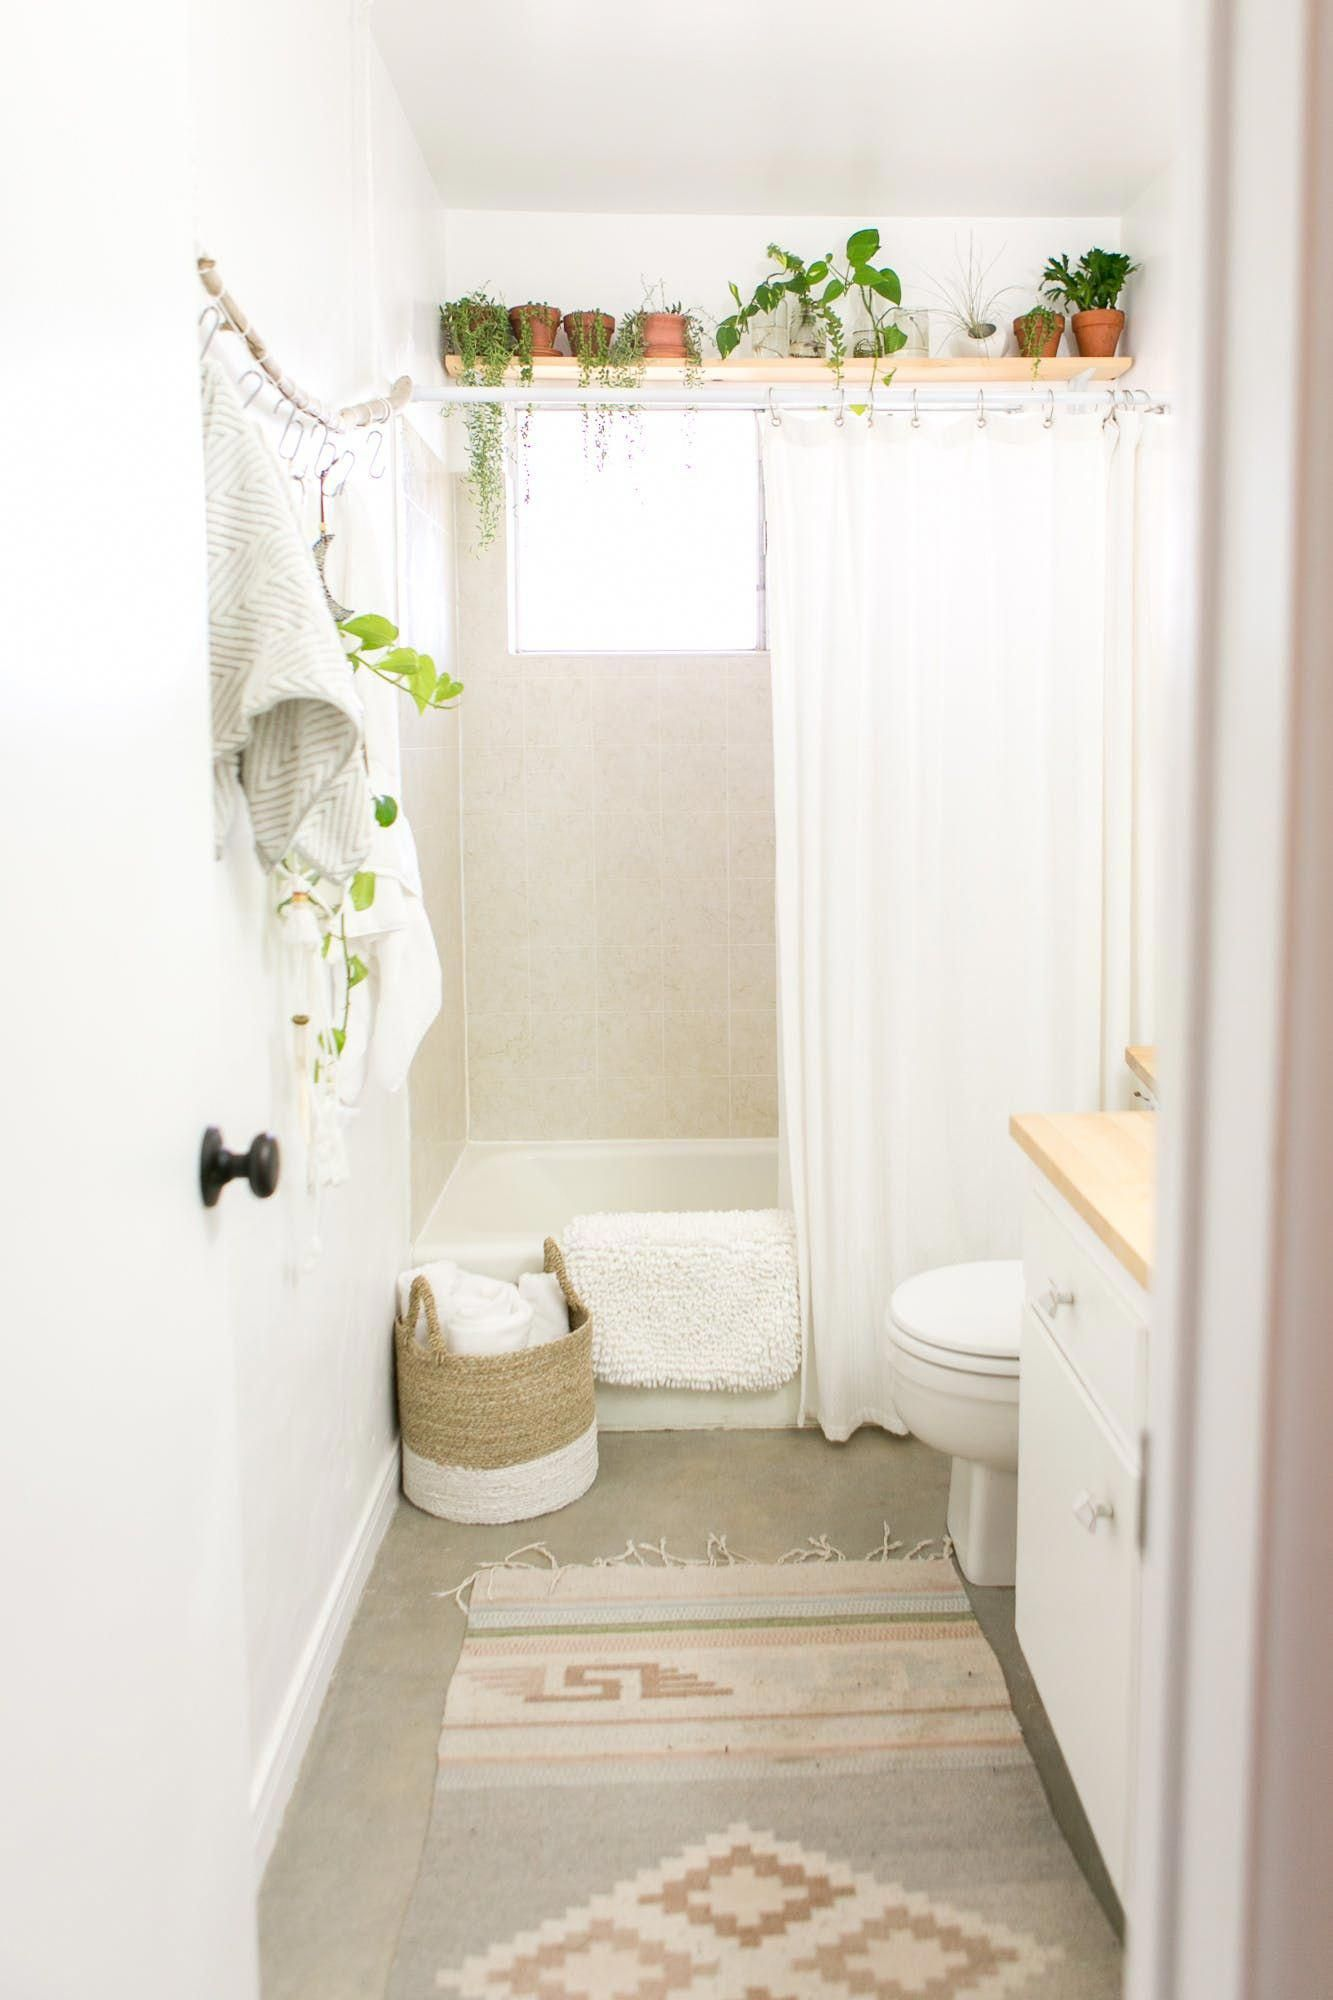 Plante Pour Salle De Bain Sans Fenêtre love the shelf with plants over the shower